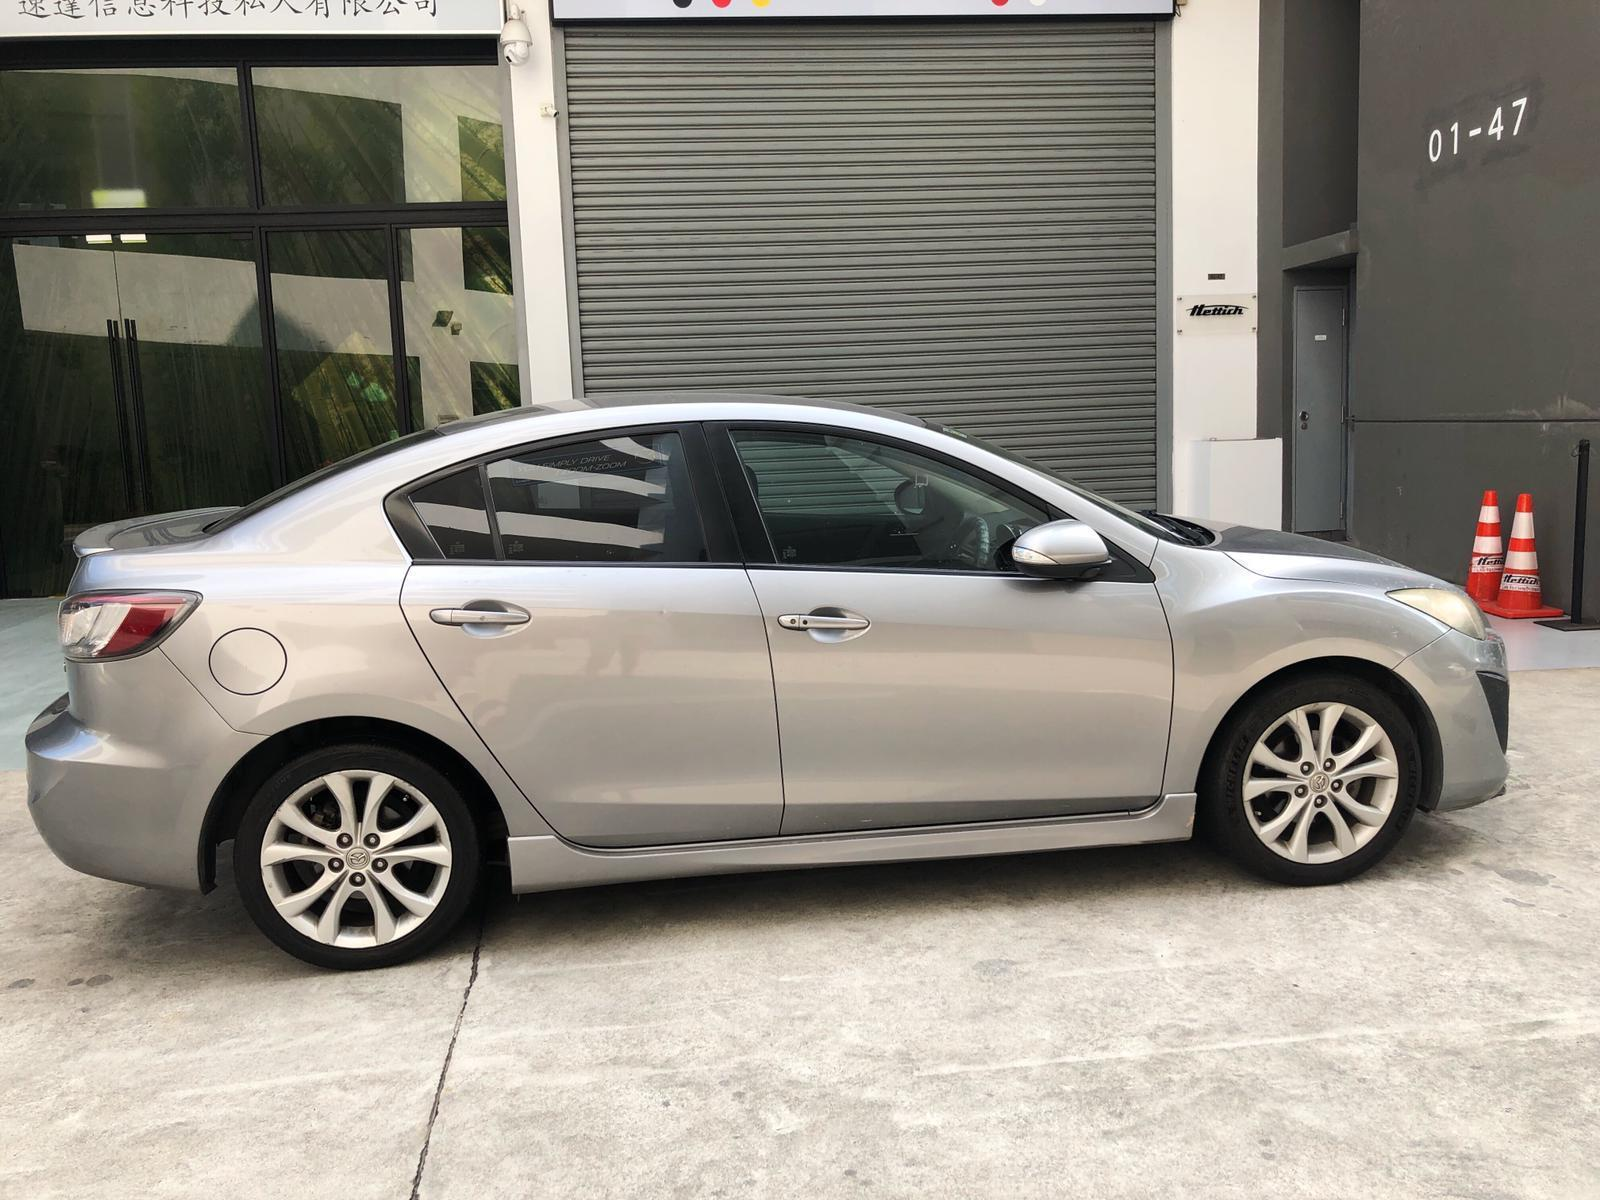 Mazda 3 RENTING OUT THE CHEAPEST VEHICLE FOR Grab/Ryde/Personal USAGE